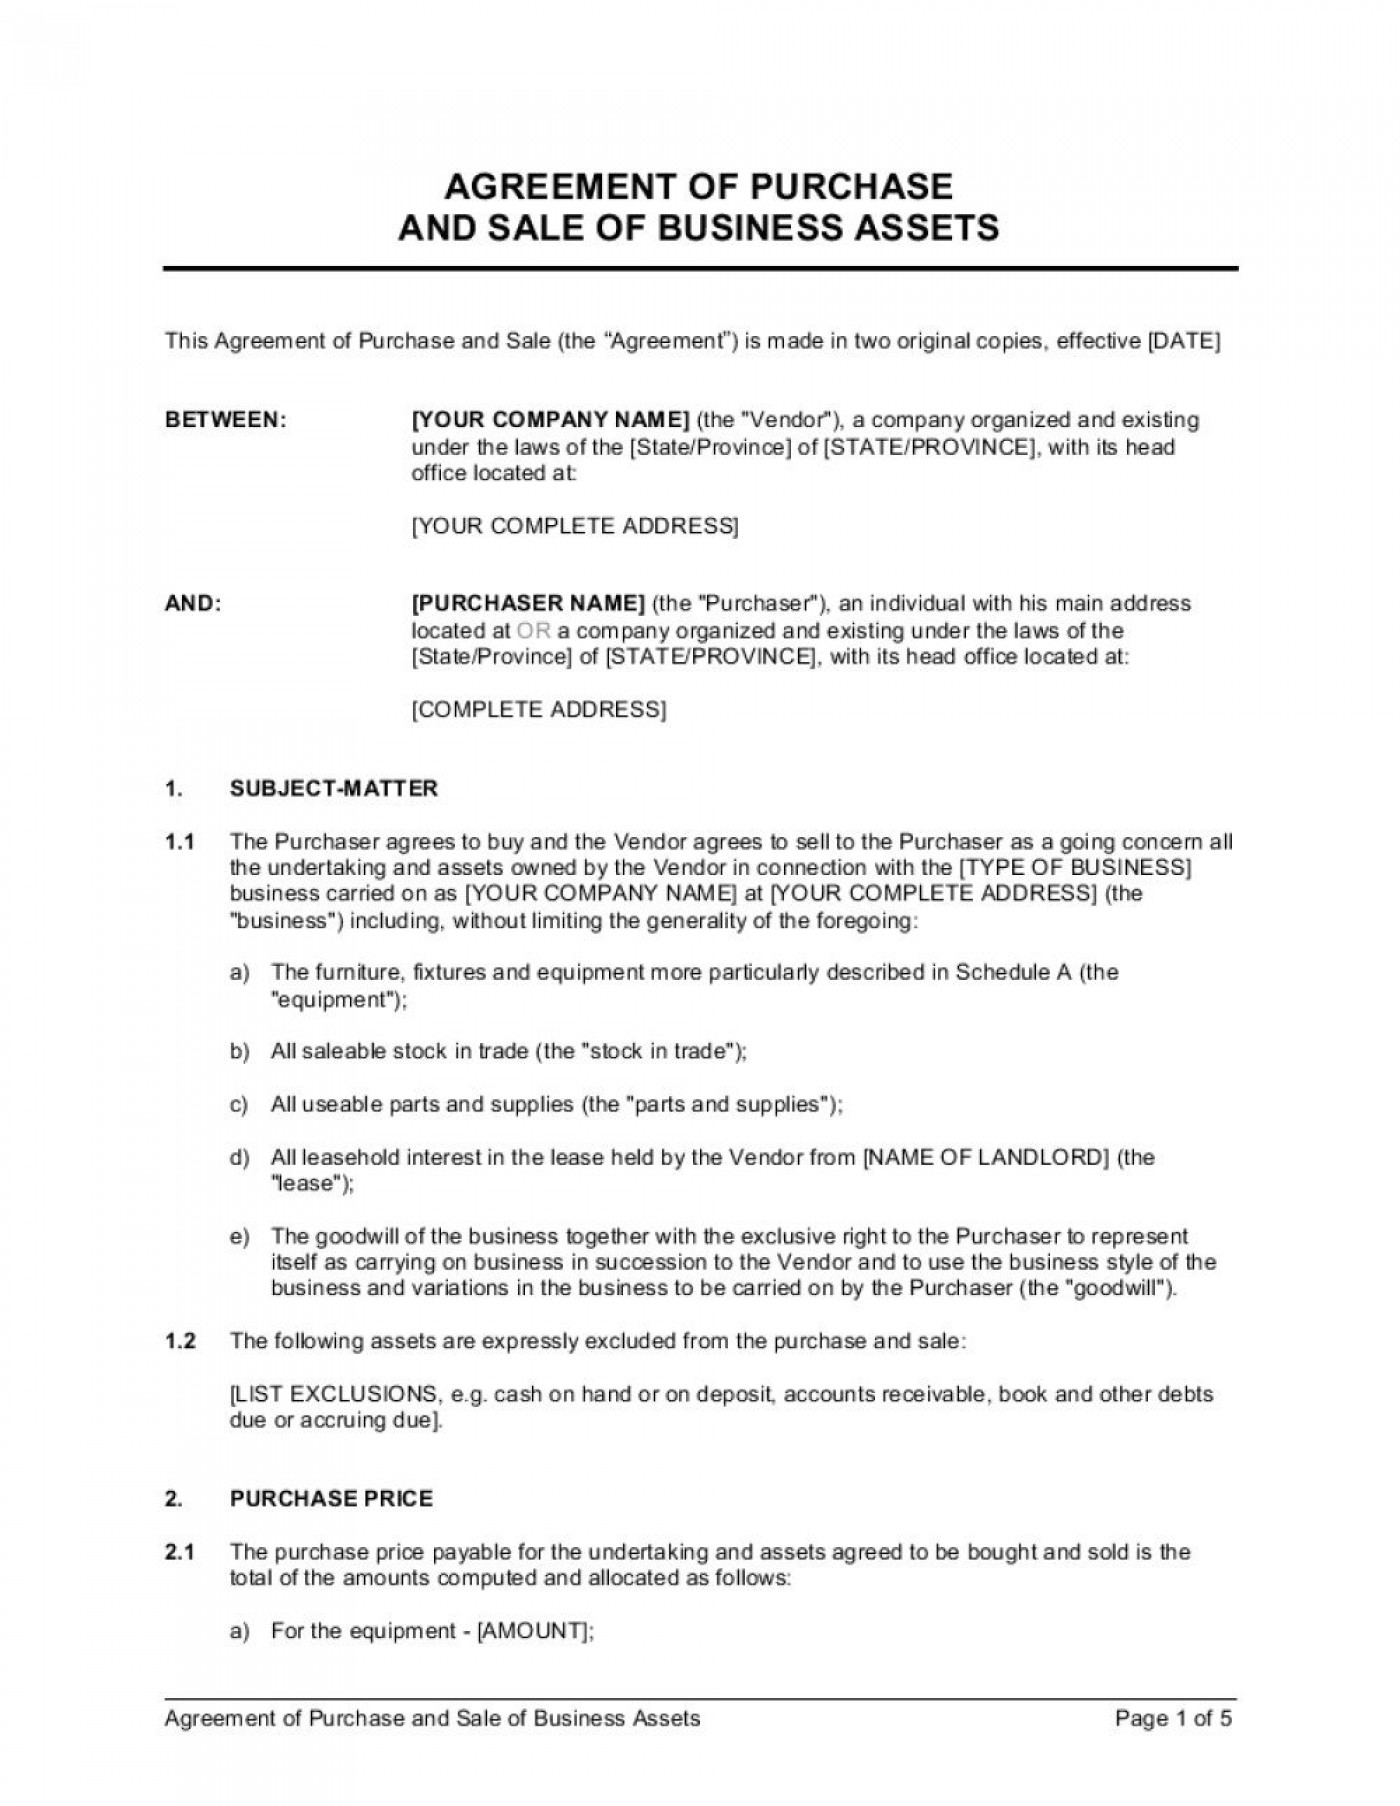 003 Beautiful Busines Sale Agreement Template Inspiration  Western Australia Free Uk Download South Africa1400